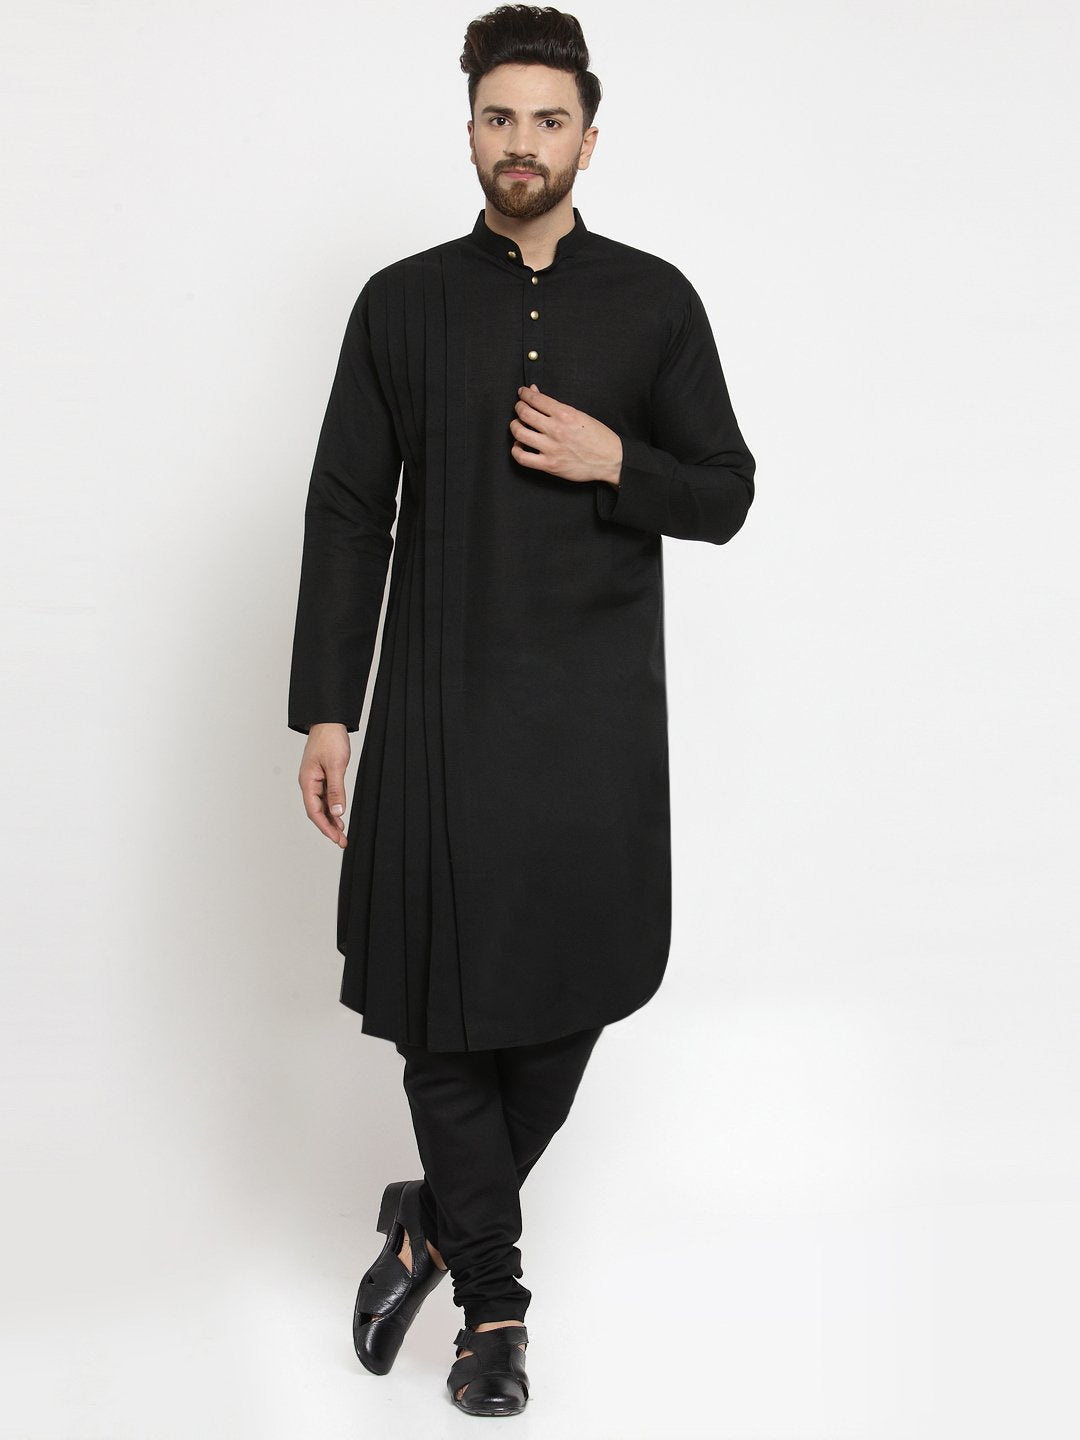 Designer Black Linen Kurta With Churidar Pajama For Men By Treemoda